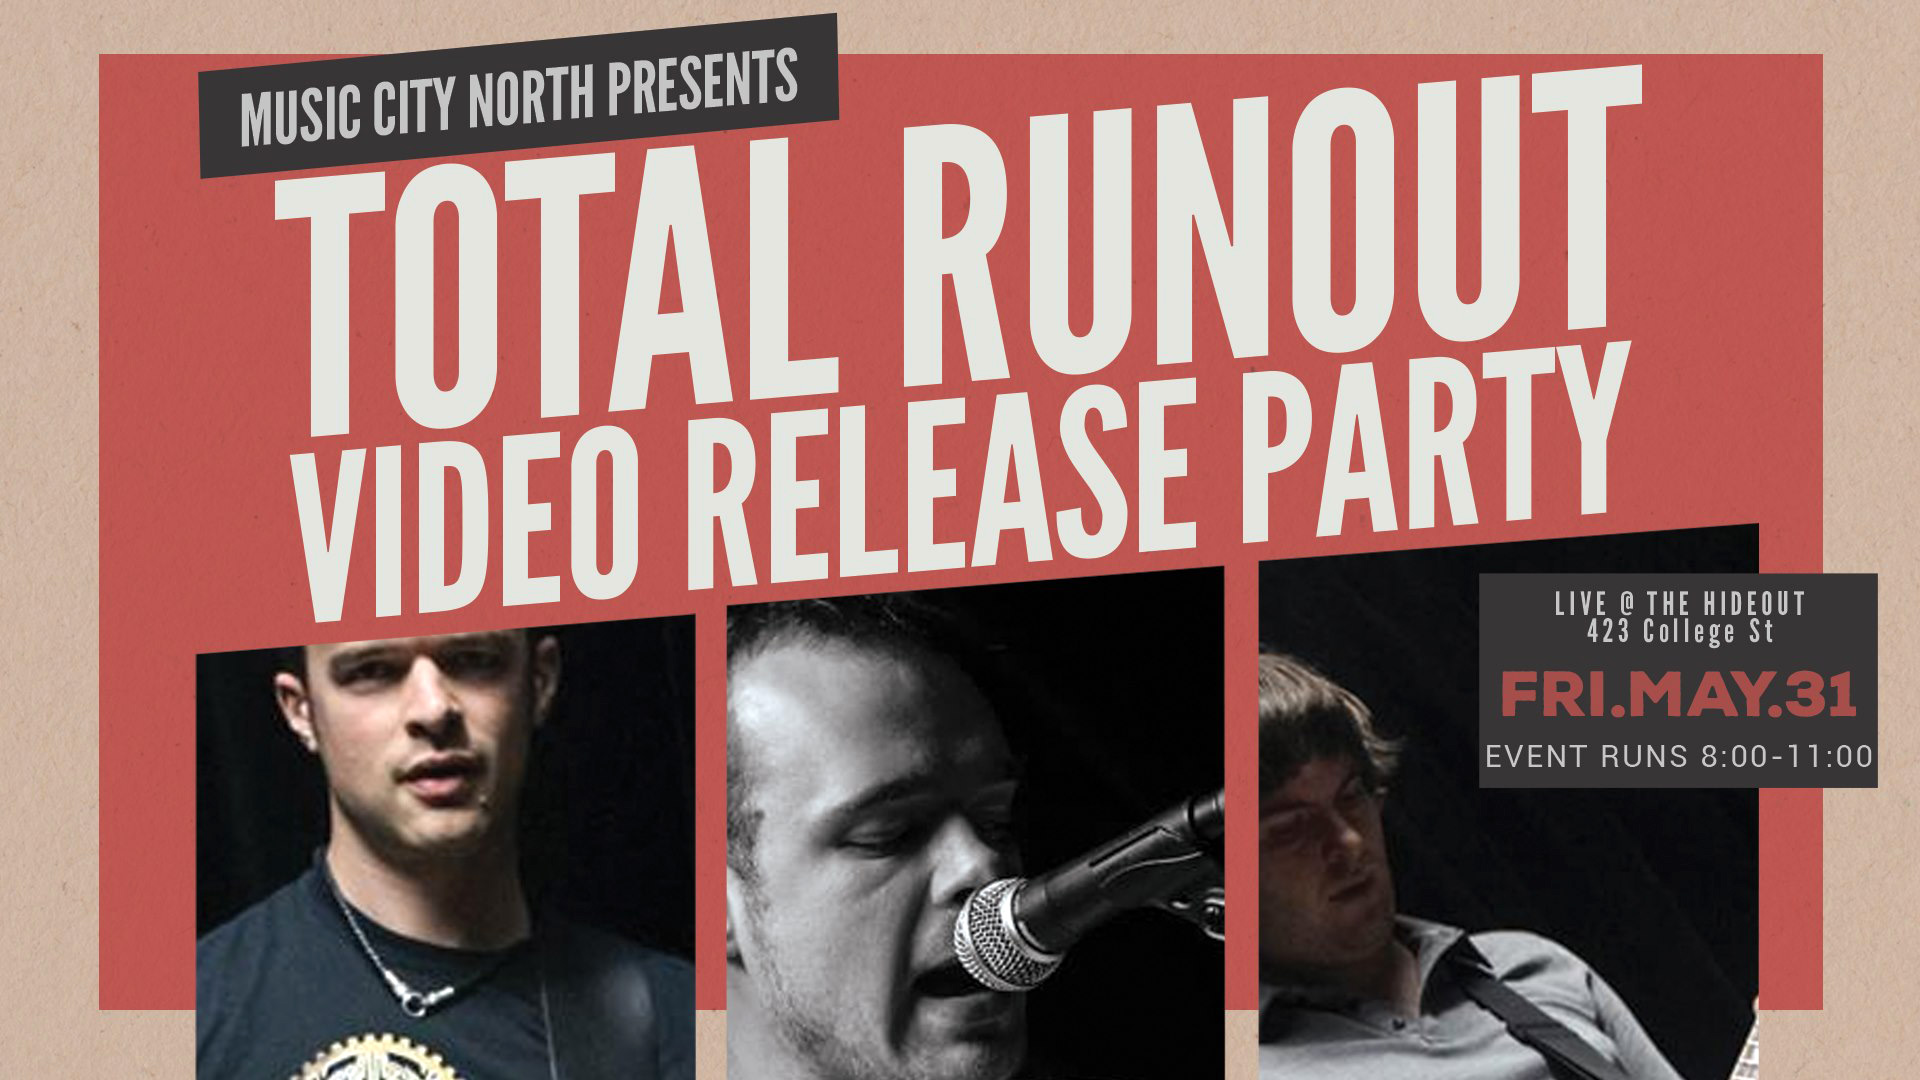 Relatively new to the scene,  Total Runout  are starting with an impact!   Join us May 31 for a Video Release Party at  The Hideout Toronto   Doors 8PM Cover $10  We've got a couple of cool things up our sleeves for the night...including... BINGO! In between sets, we are going to have a game of Came to Win Bingo with a prize pack and a cash prize.   The first 25 people will receive a BINGO card After that, it's a $5 buy in. Win and you receive all the cash PLUS the CAME to win prize pack...will post pics of the fun prize pack  The person calling the numbers:  Thrasher Burlyque  who will also be doing a Burlesque routine for y'all!!    Total Runout  (Toronto)  https://www.totalrunout.com/    Parasona  (Toronto)  https://www.parasonaband.com/   Make sure to support the artists/venue ... come for the beginning and stay to the end to be part of this night that is going to be filled with excitement! DO NOT MISS THIS! \m/ __________________________________